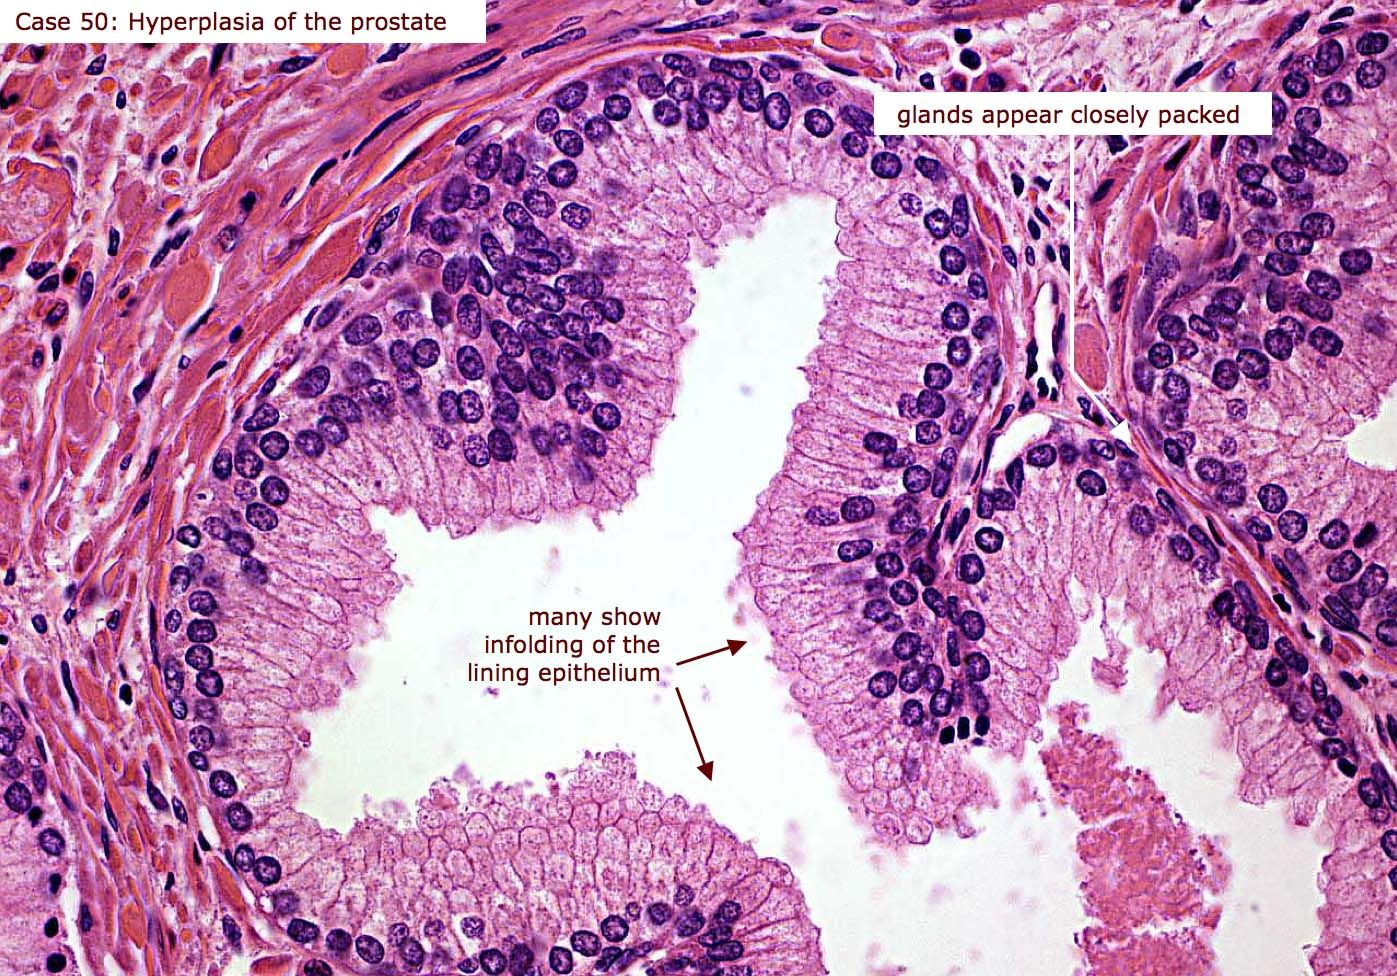 glandular epithelium cells | Cell, Case